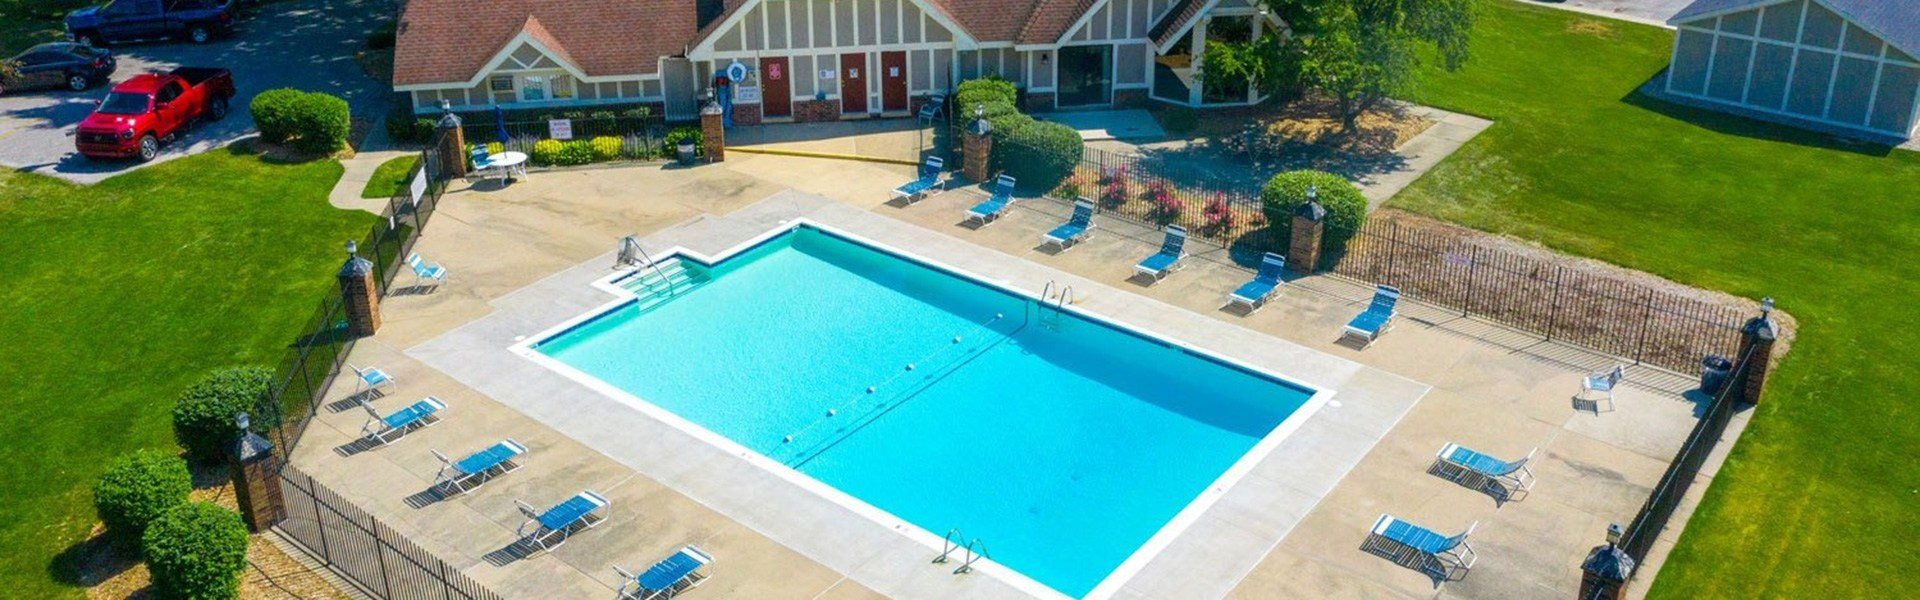 Sparkling Swimming Pool at Hickory Village Apartments, Mishawaka, IN